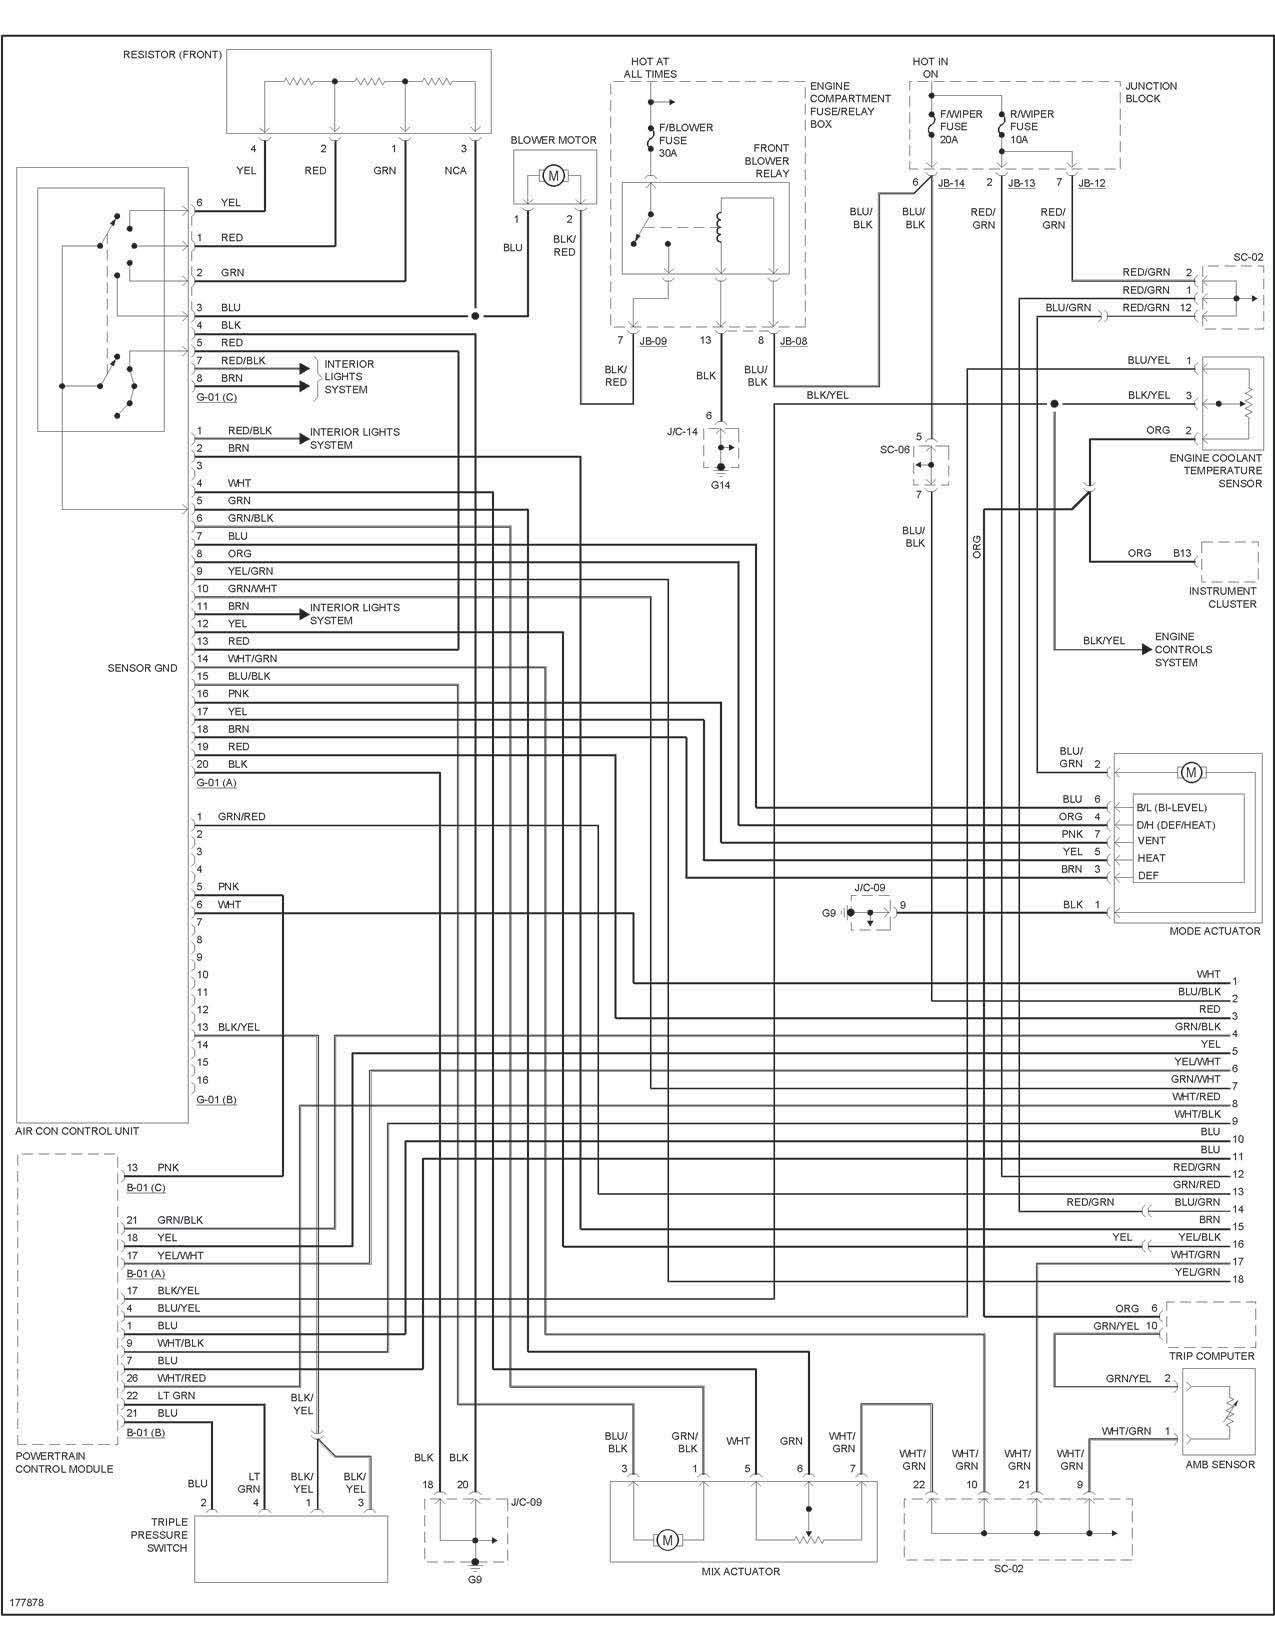 1999 Kia Sephia Wiring Diagram - Wiring Diagrams Name note-academy -  note-academy.illabirintodellacreativita.it | 99 Kia Sephia Engine Wiring Diagram |  | illabirintodellacreativita.it